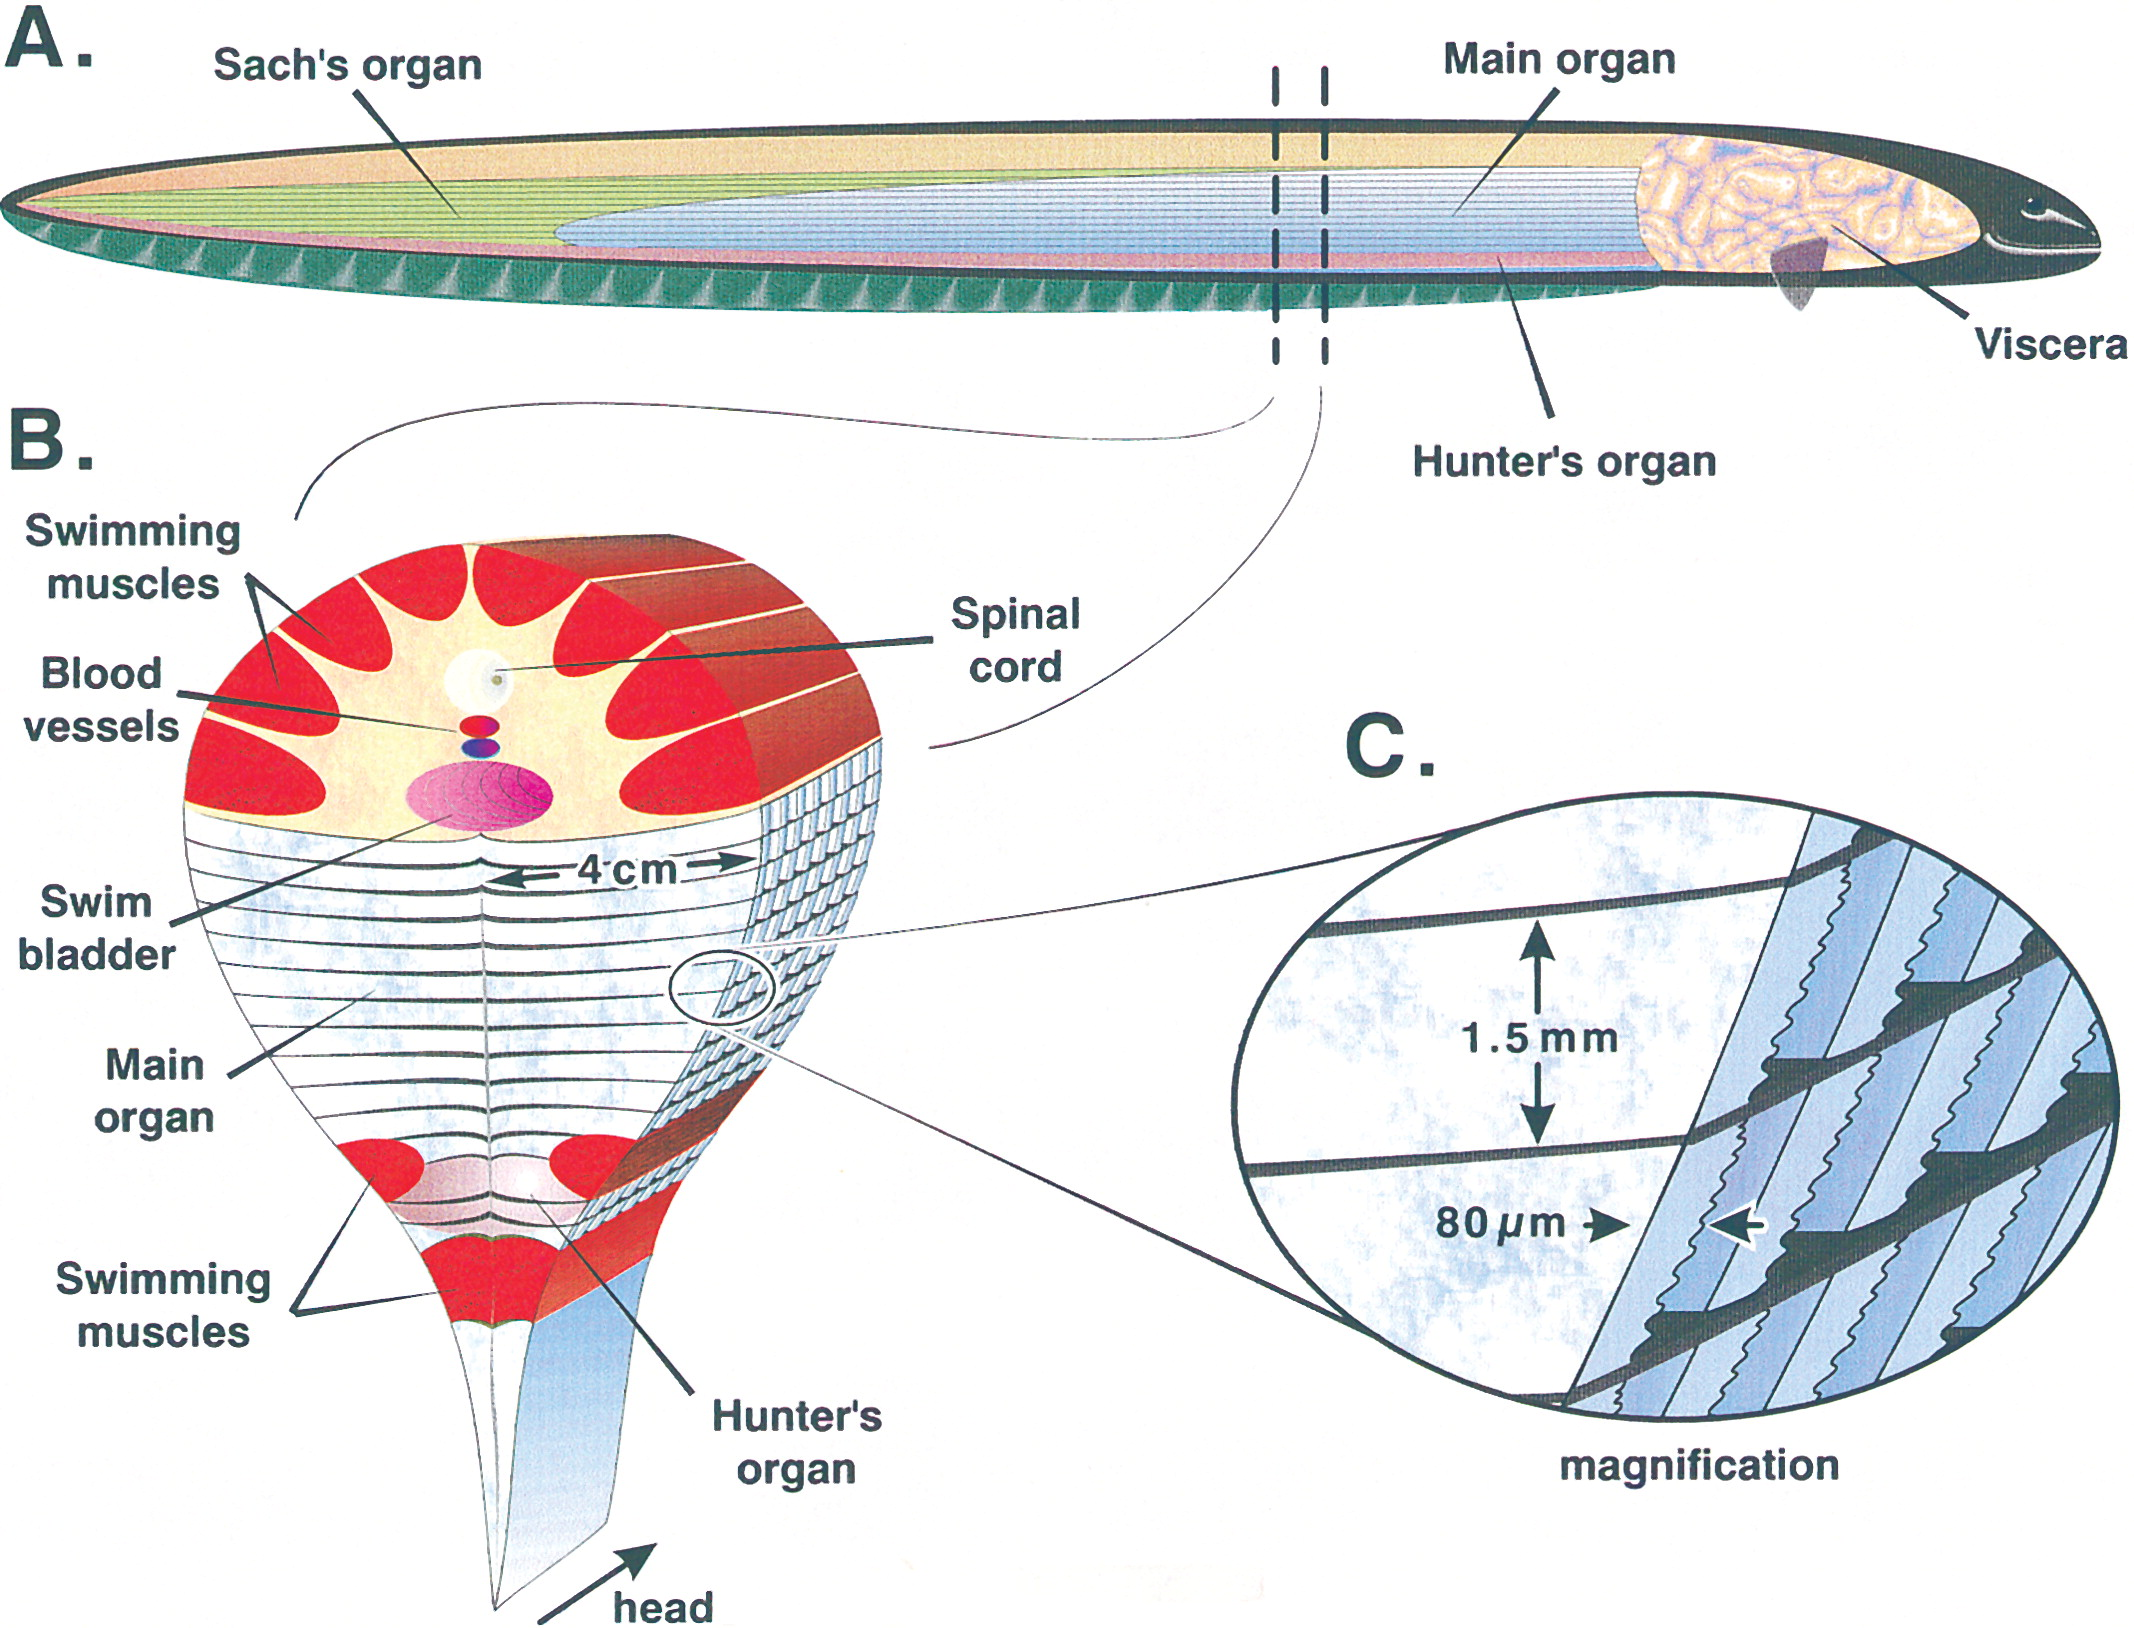 anatomy of electric eel The electric eel generates large electric currents by way of a highly specialized nervous system that has the capacity to synchronize the activity of disc-shaped, electricity-producing cells .